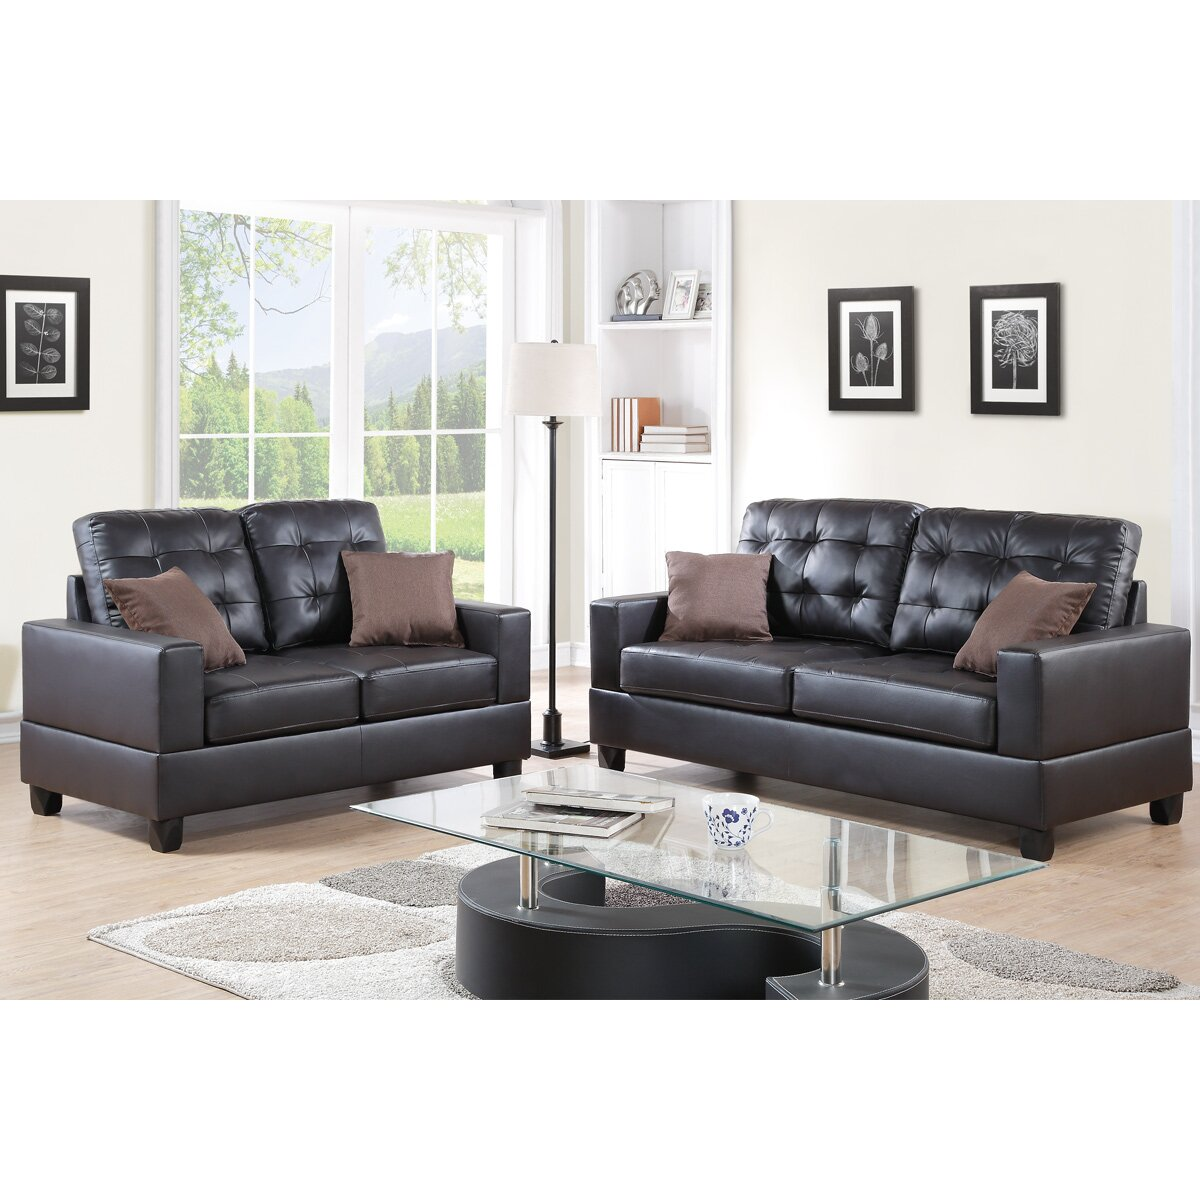 Bobkona aria 2 piece sofa and loveseat set wayfair for 2 piece furniture set